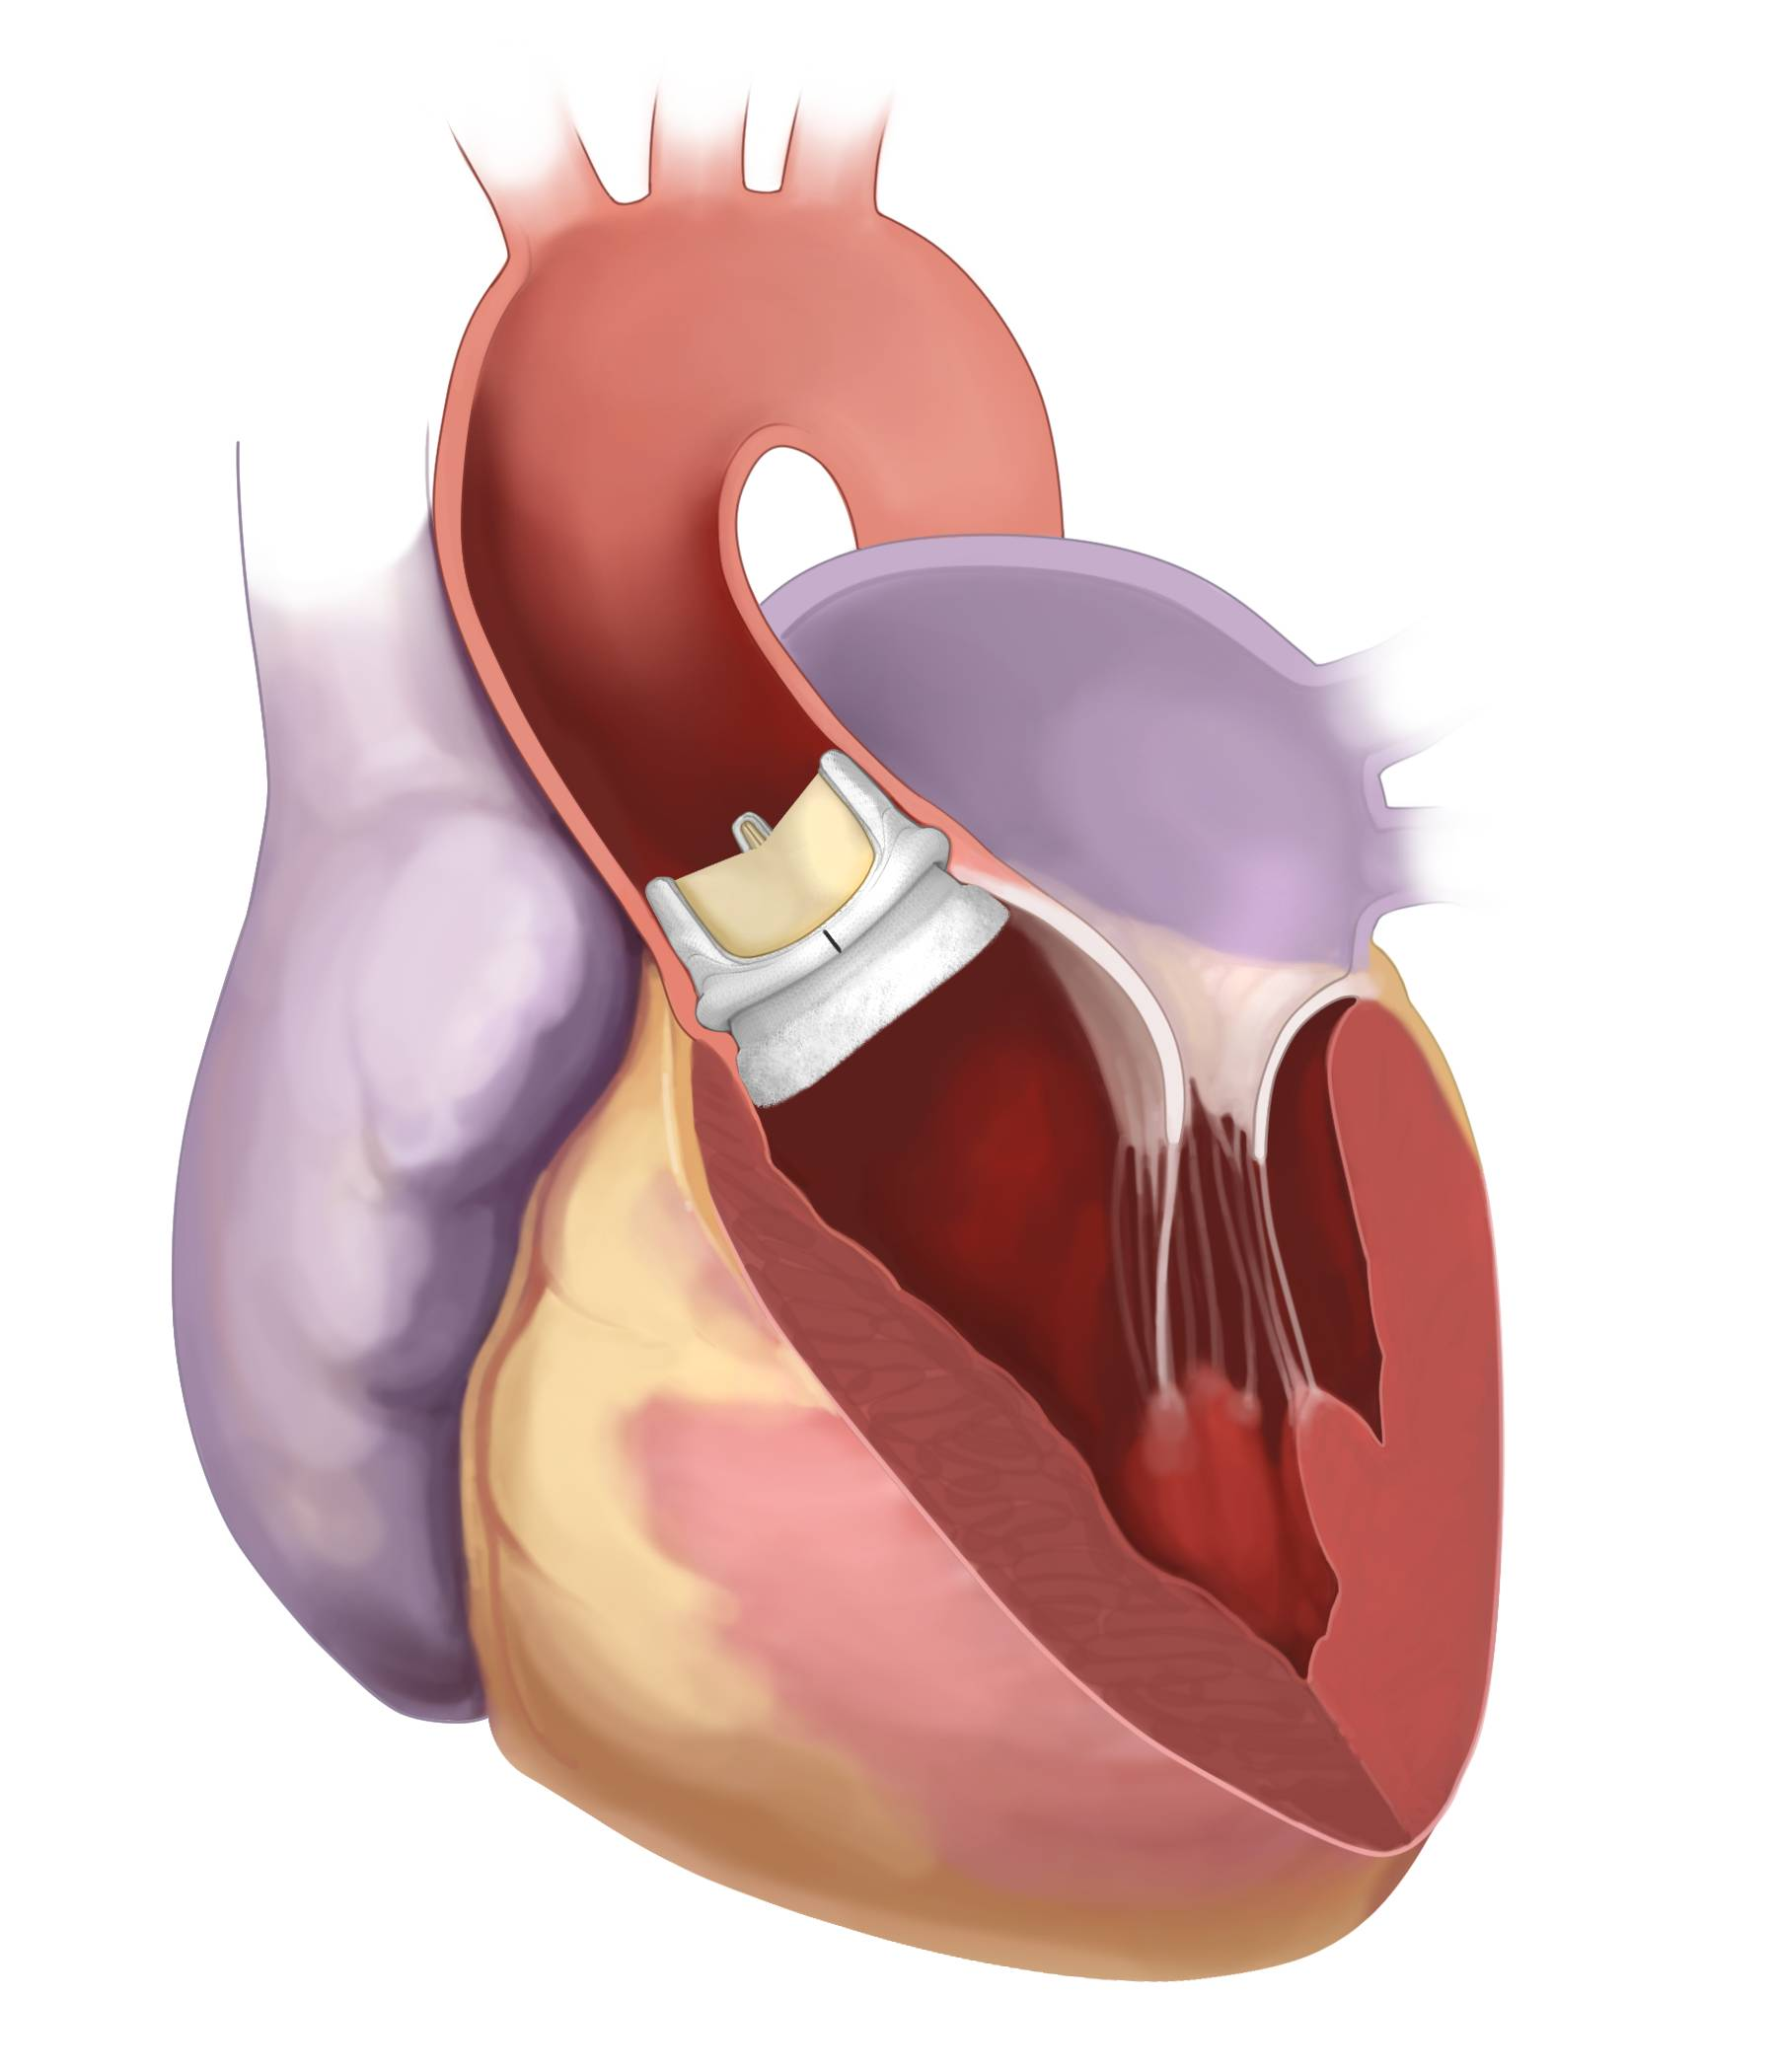 New aortic valve system at Central DuPage offers less invasive alternative to traditional open heart surgery